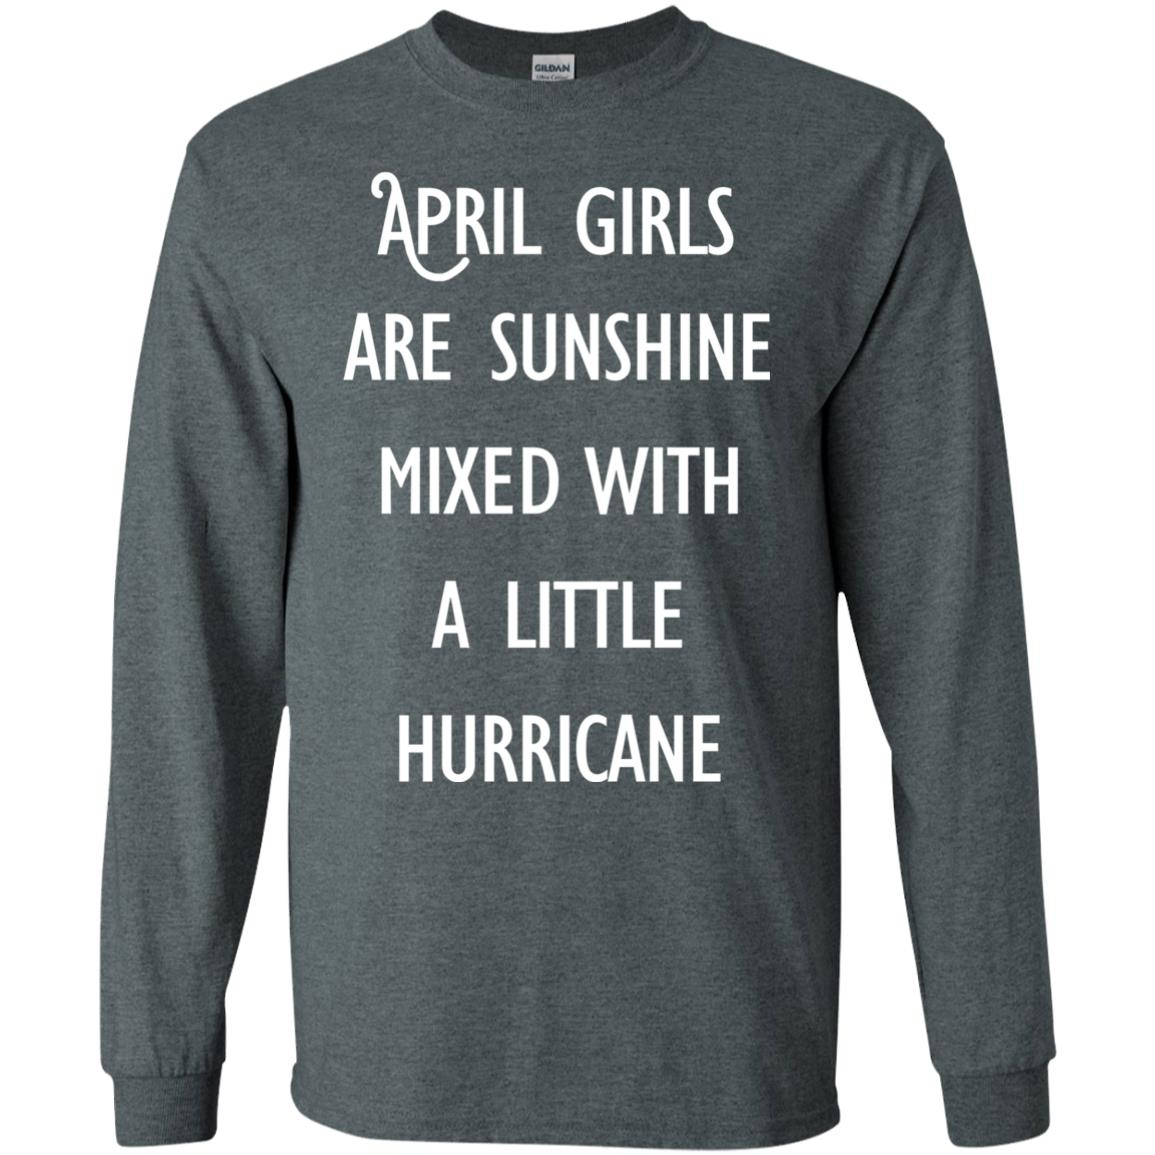 image 198 - April Girls Are Sunshine Mixed With A Little Hurricane T-shirt